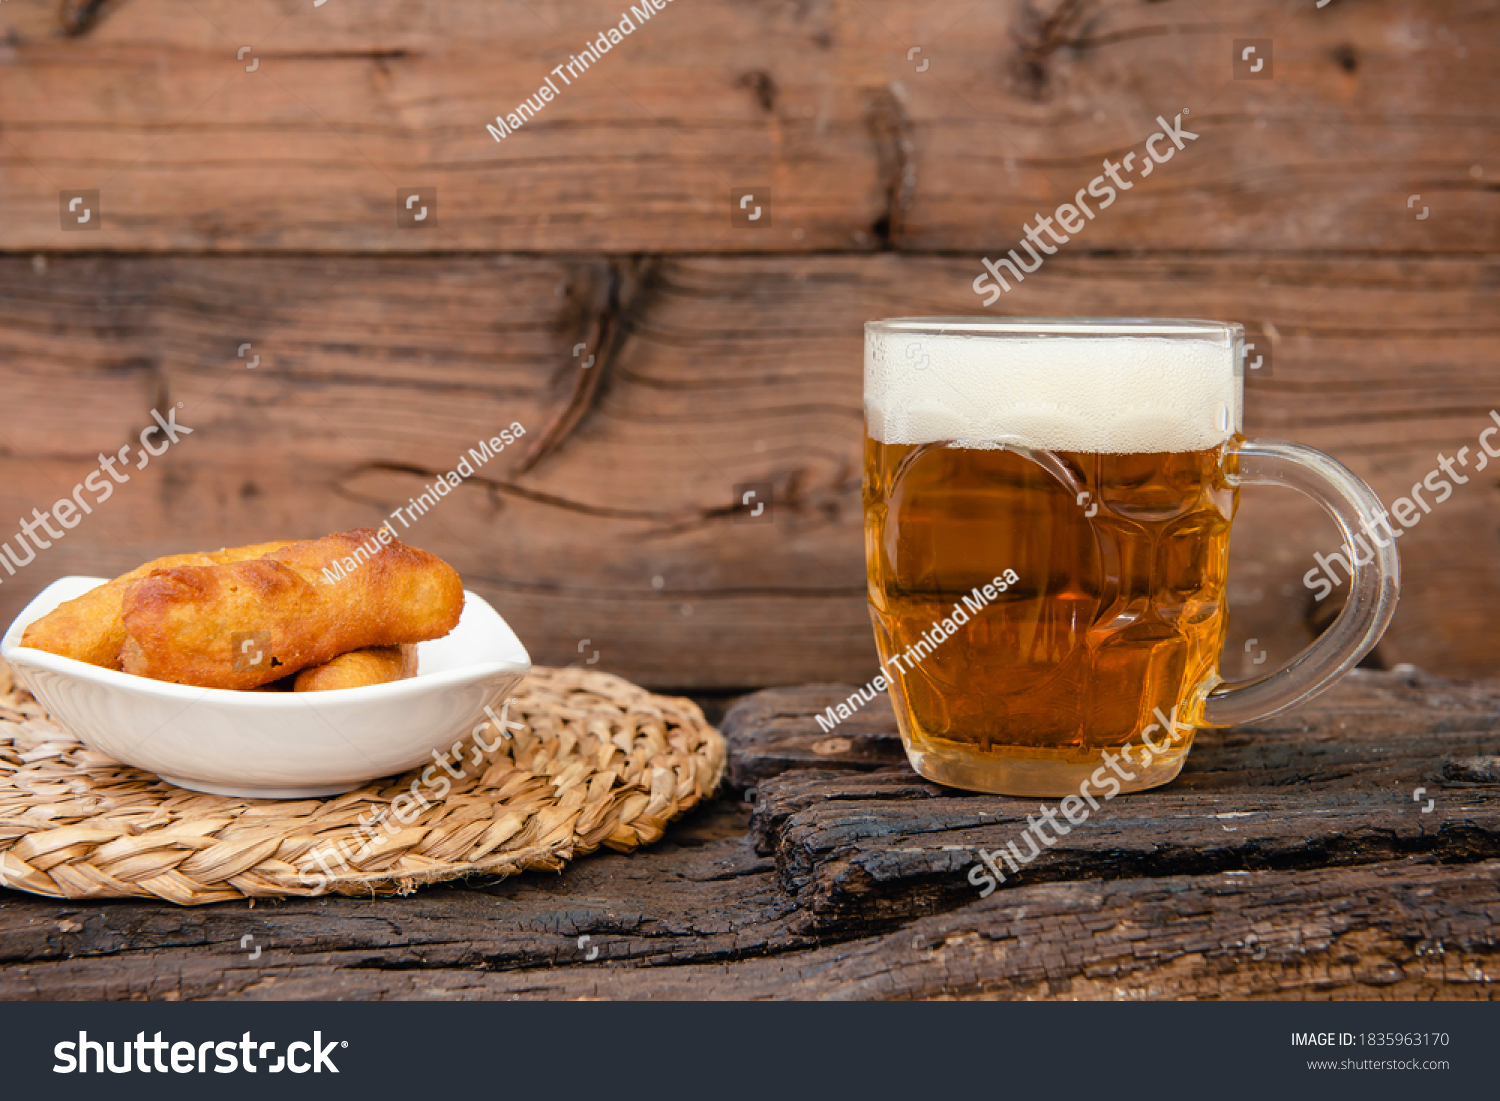 A mug of beer and a snack on rustic background